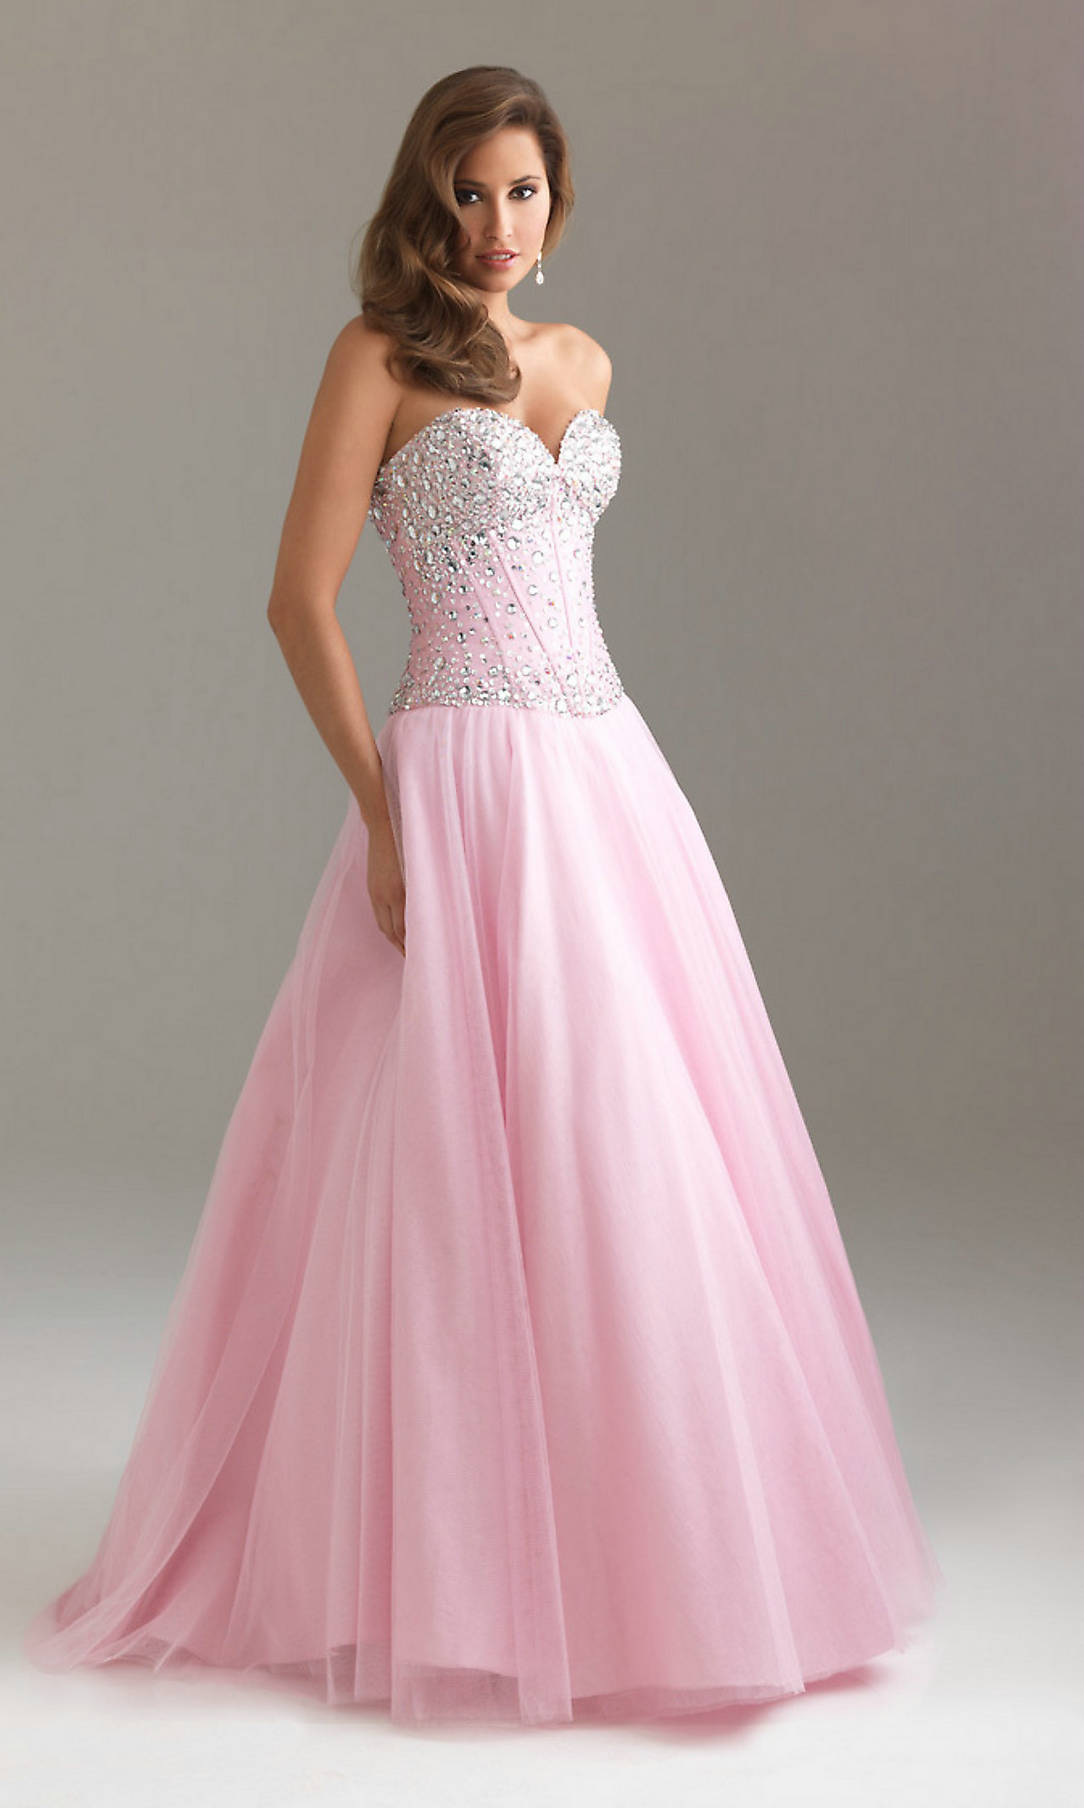 What Color Should Your Prom Dress Be?   Playbuzz